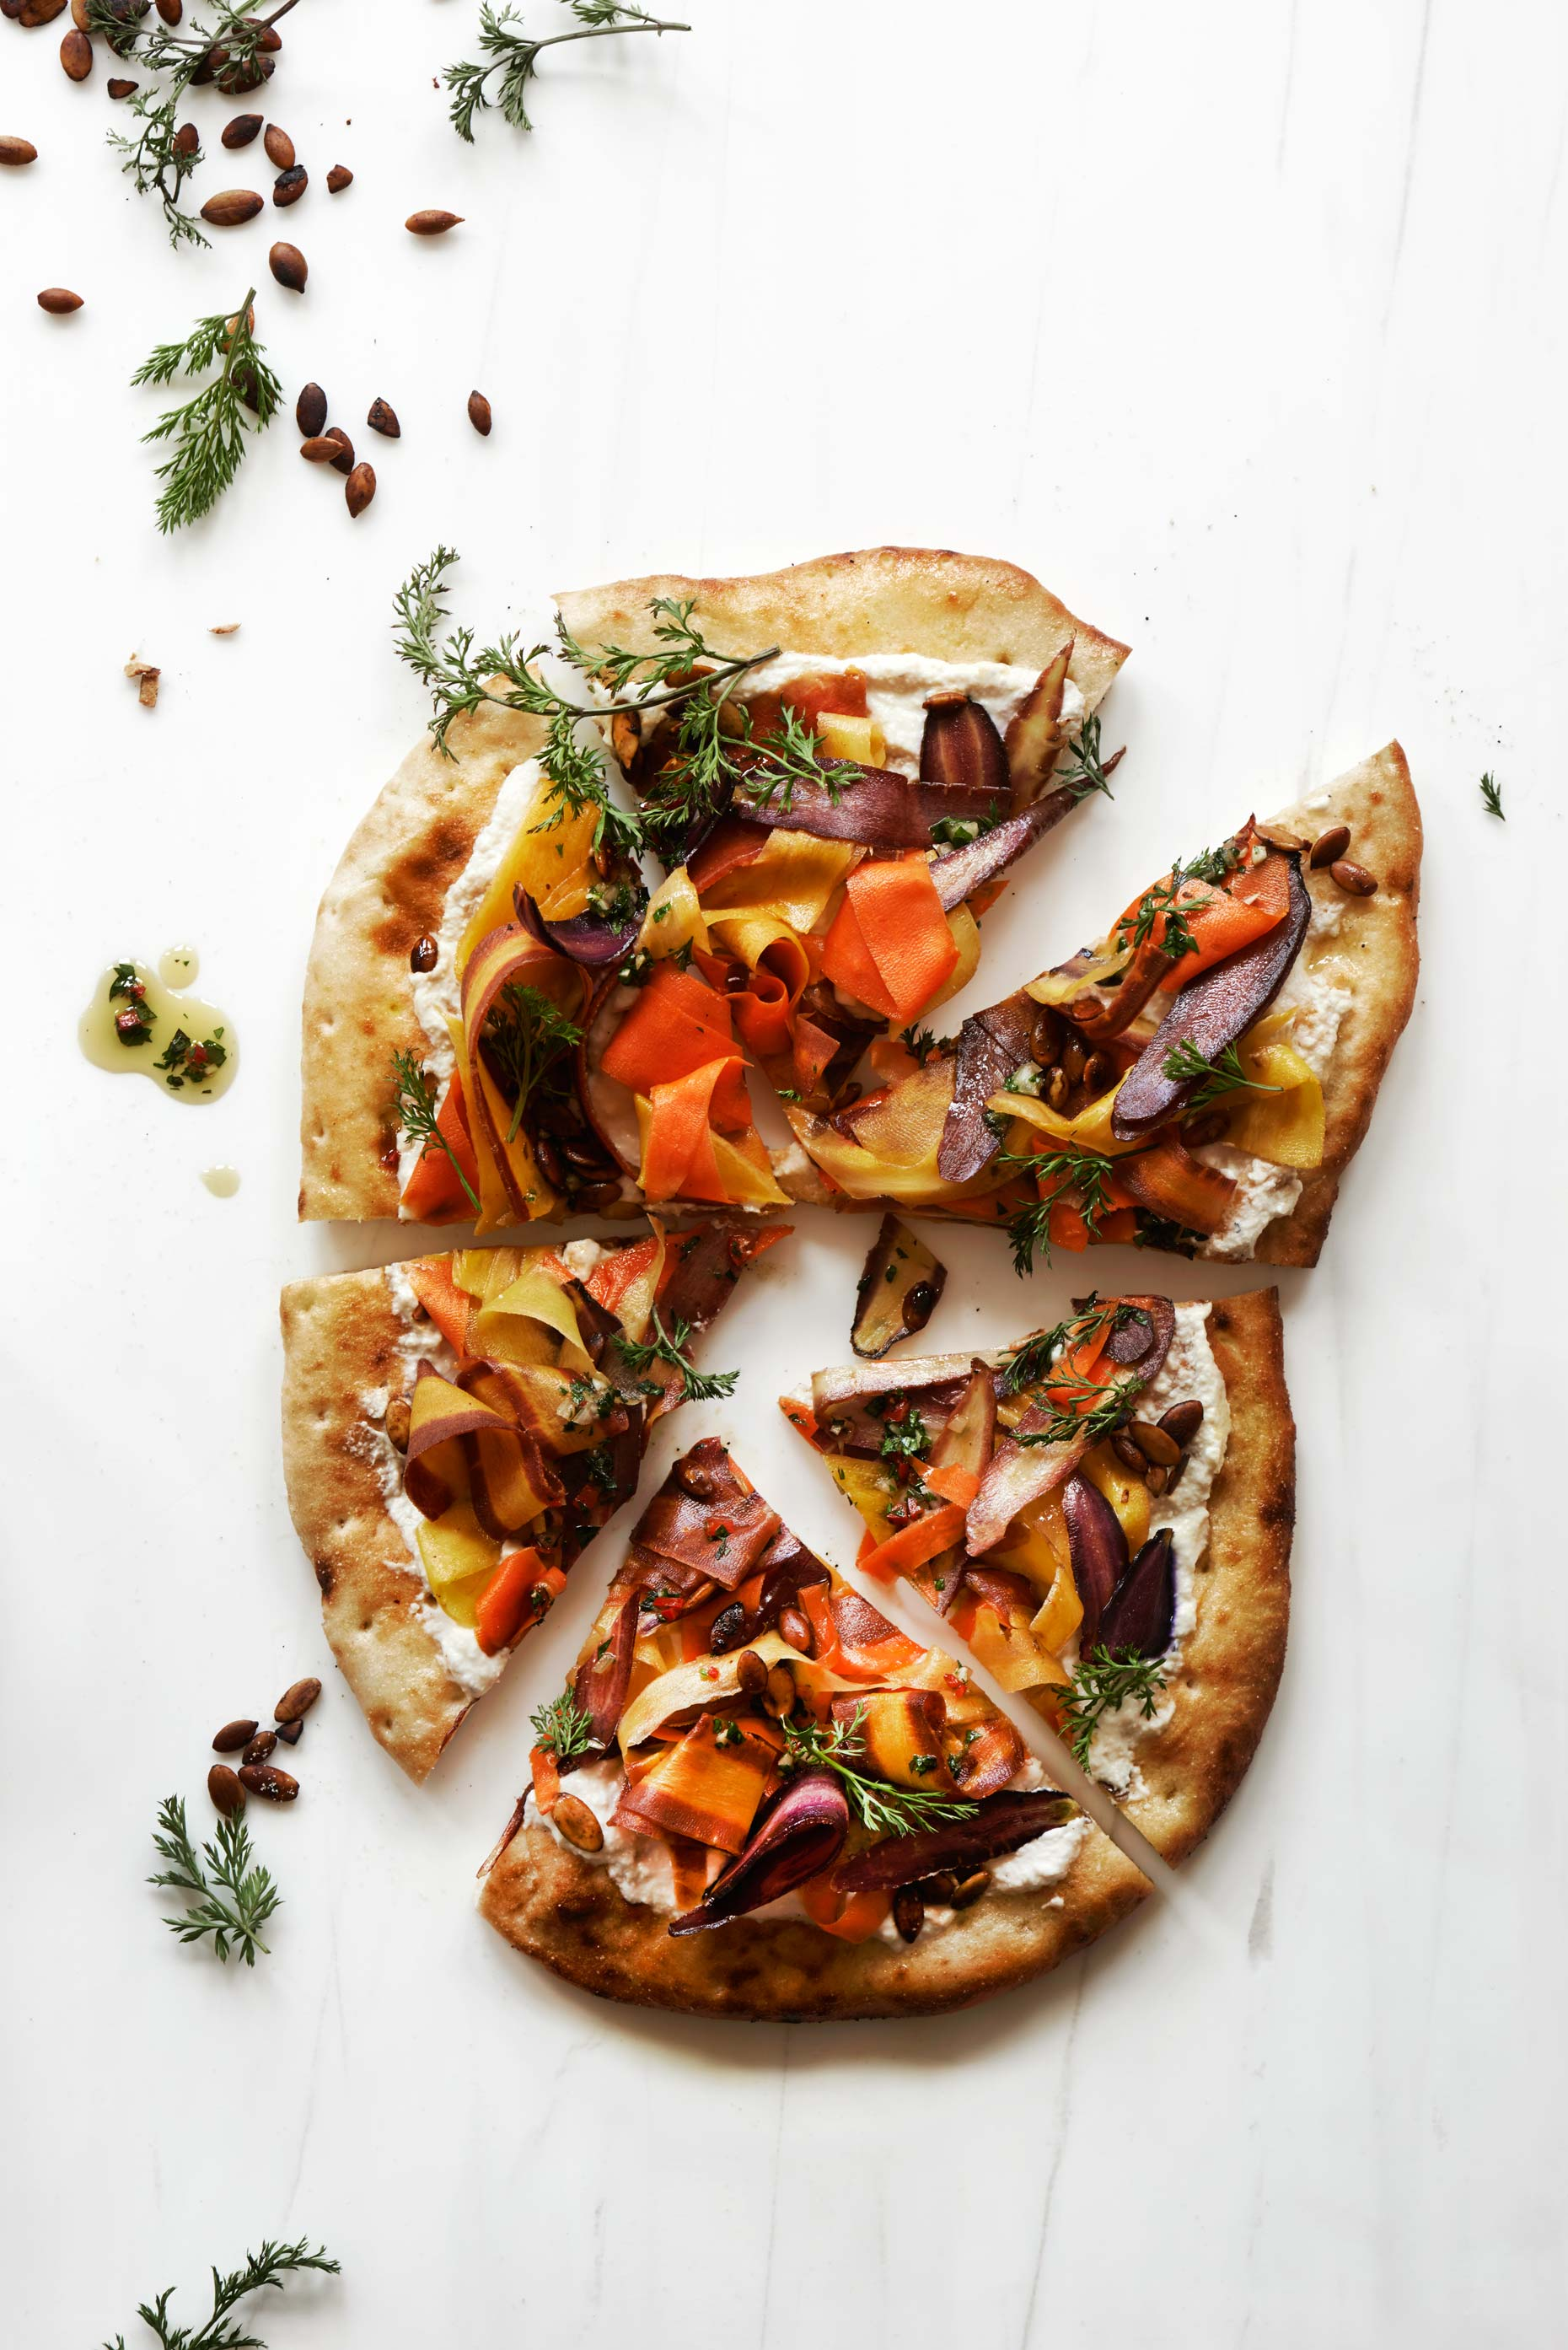 AdrianMueller_Photographer_Pizza_12